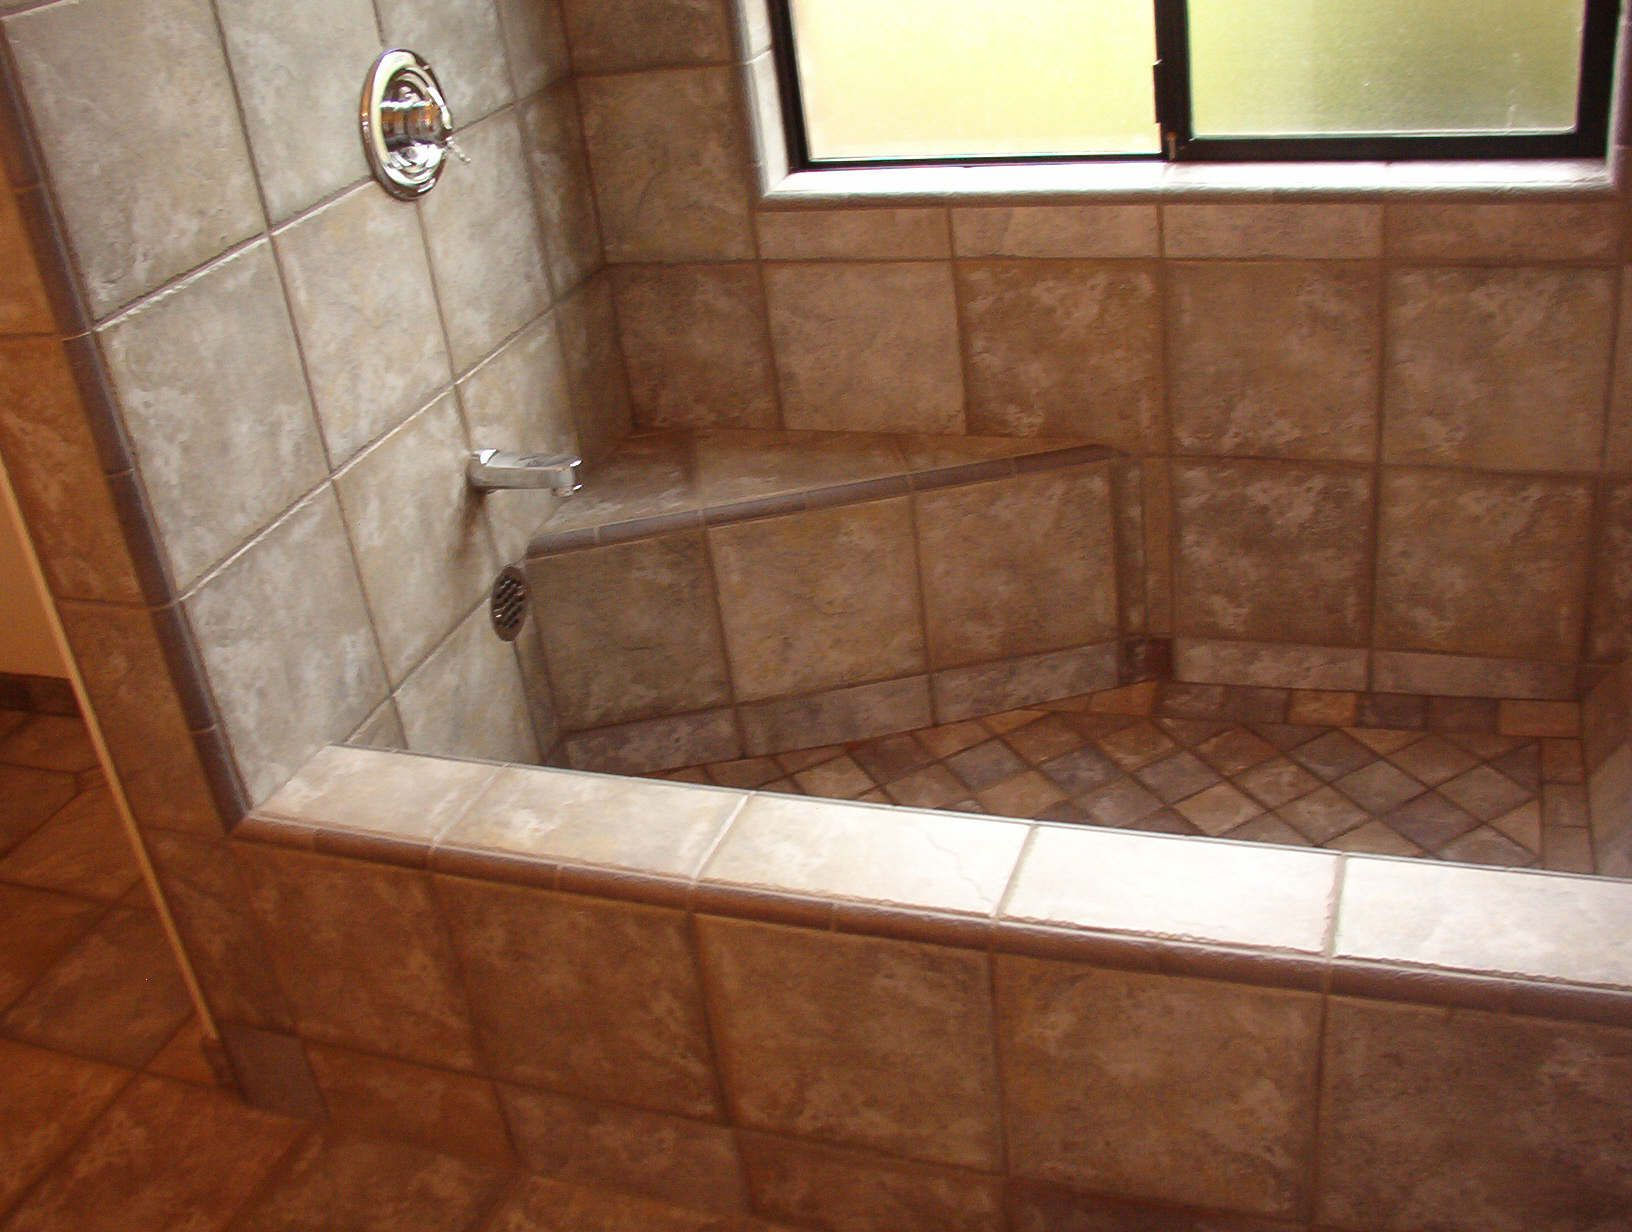 Roman Bathtub Ideas Http Totrodz Com Roman Bathtub Ideas